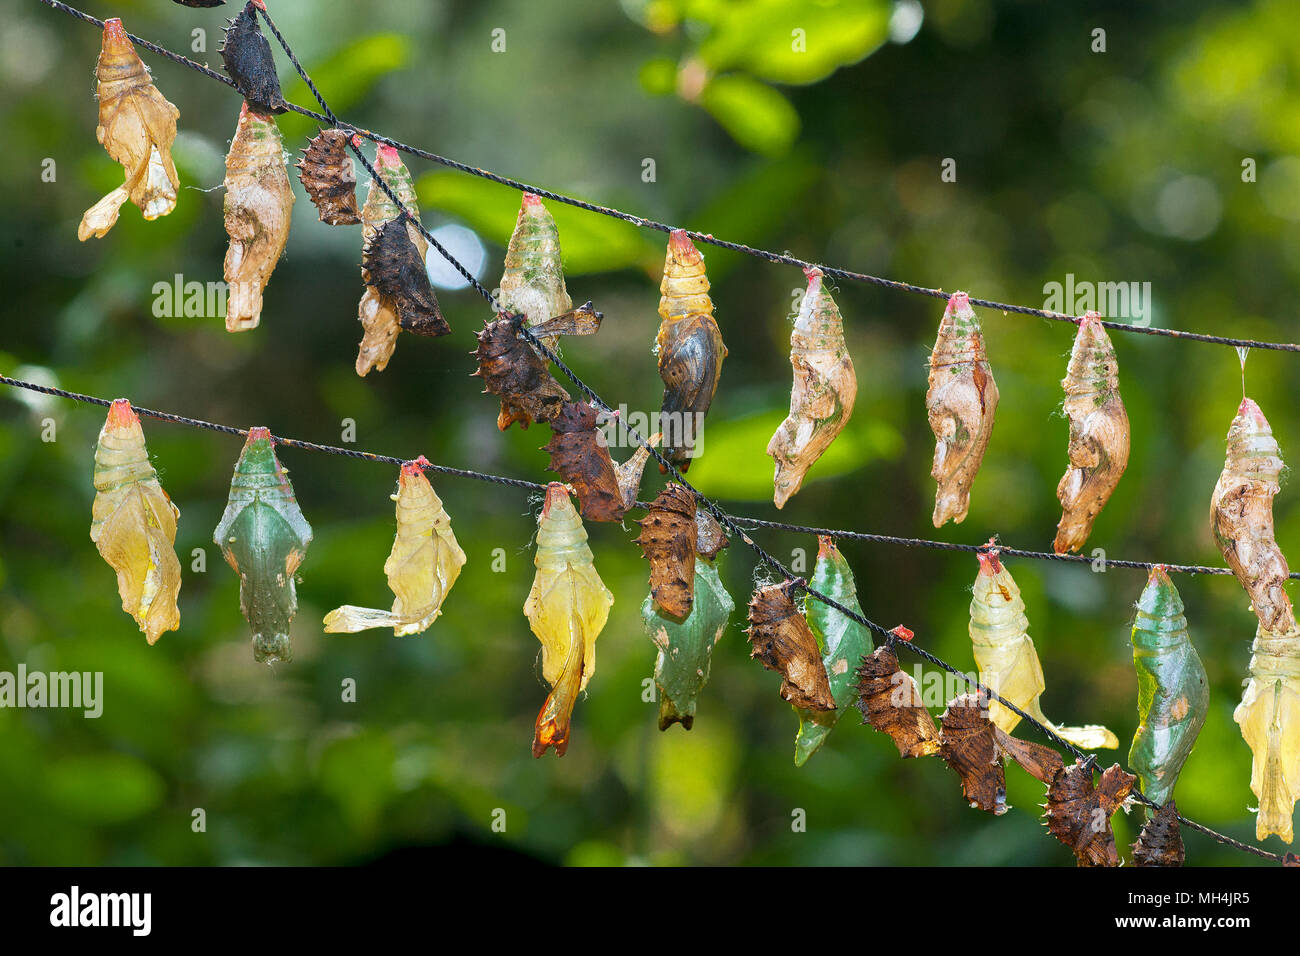 Strings of butterfly chrysalis hang at the Butterfly Farm in Puerto Princesa, Palawan Island in the Philippines. Small, white parasite eggs can be see - Stock Image